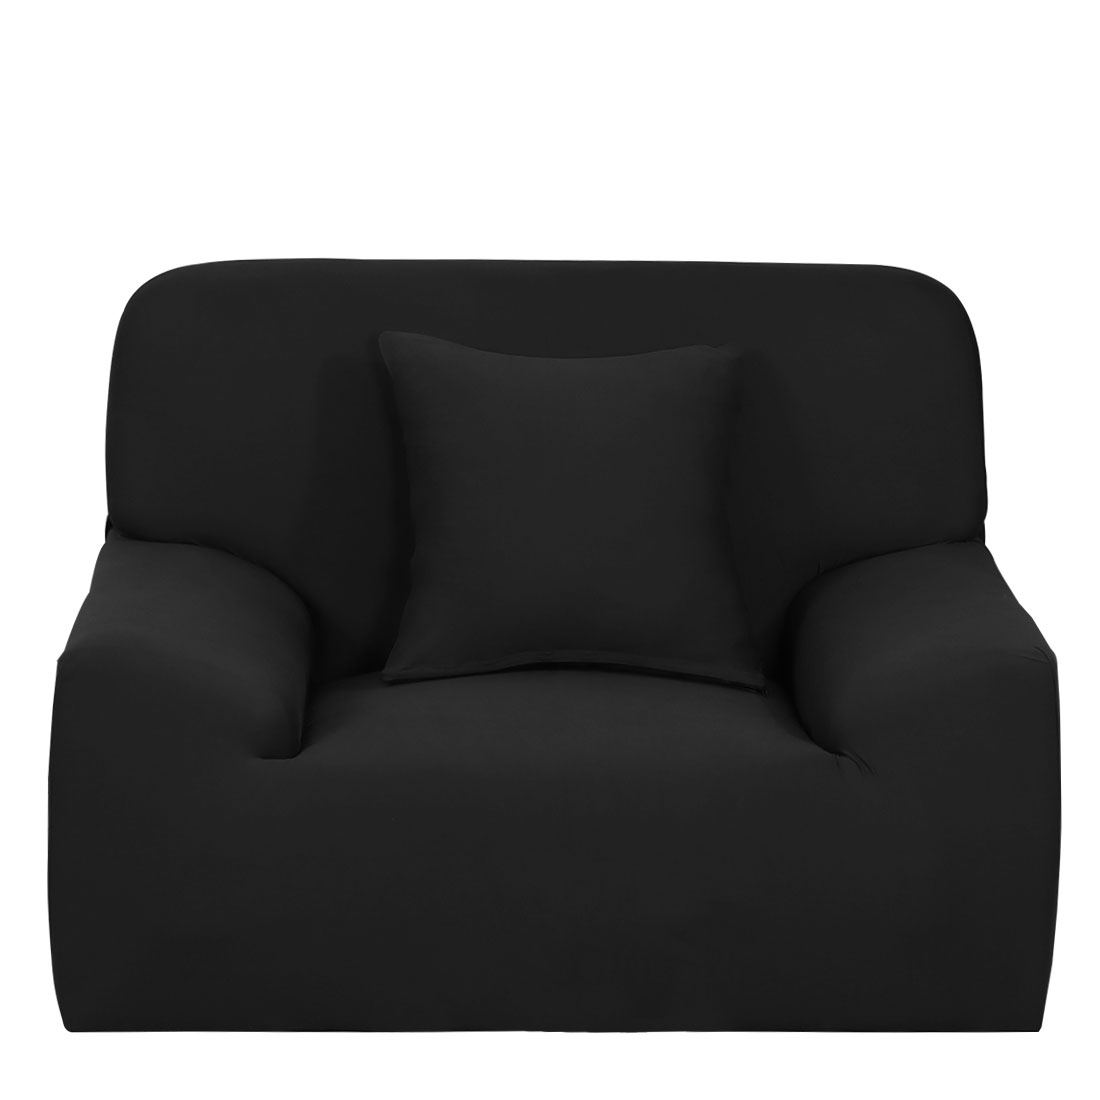 black chair covers walmart hanging on grace and frankie stretch sofa cover loveseat couch slipcovers